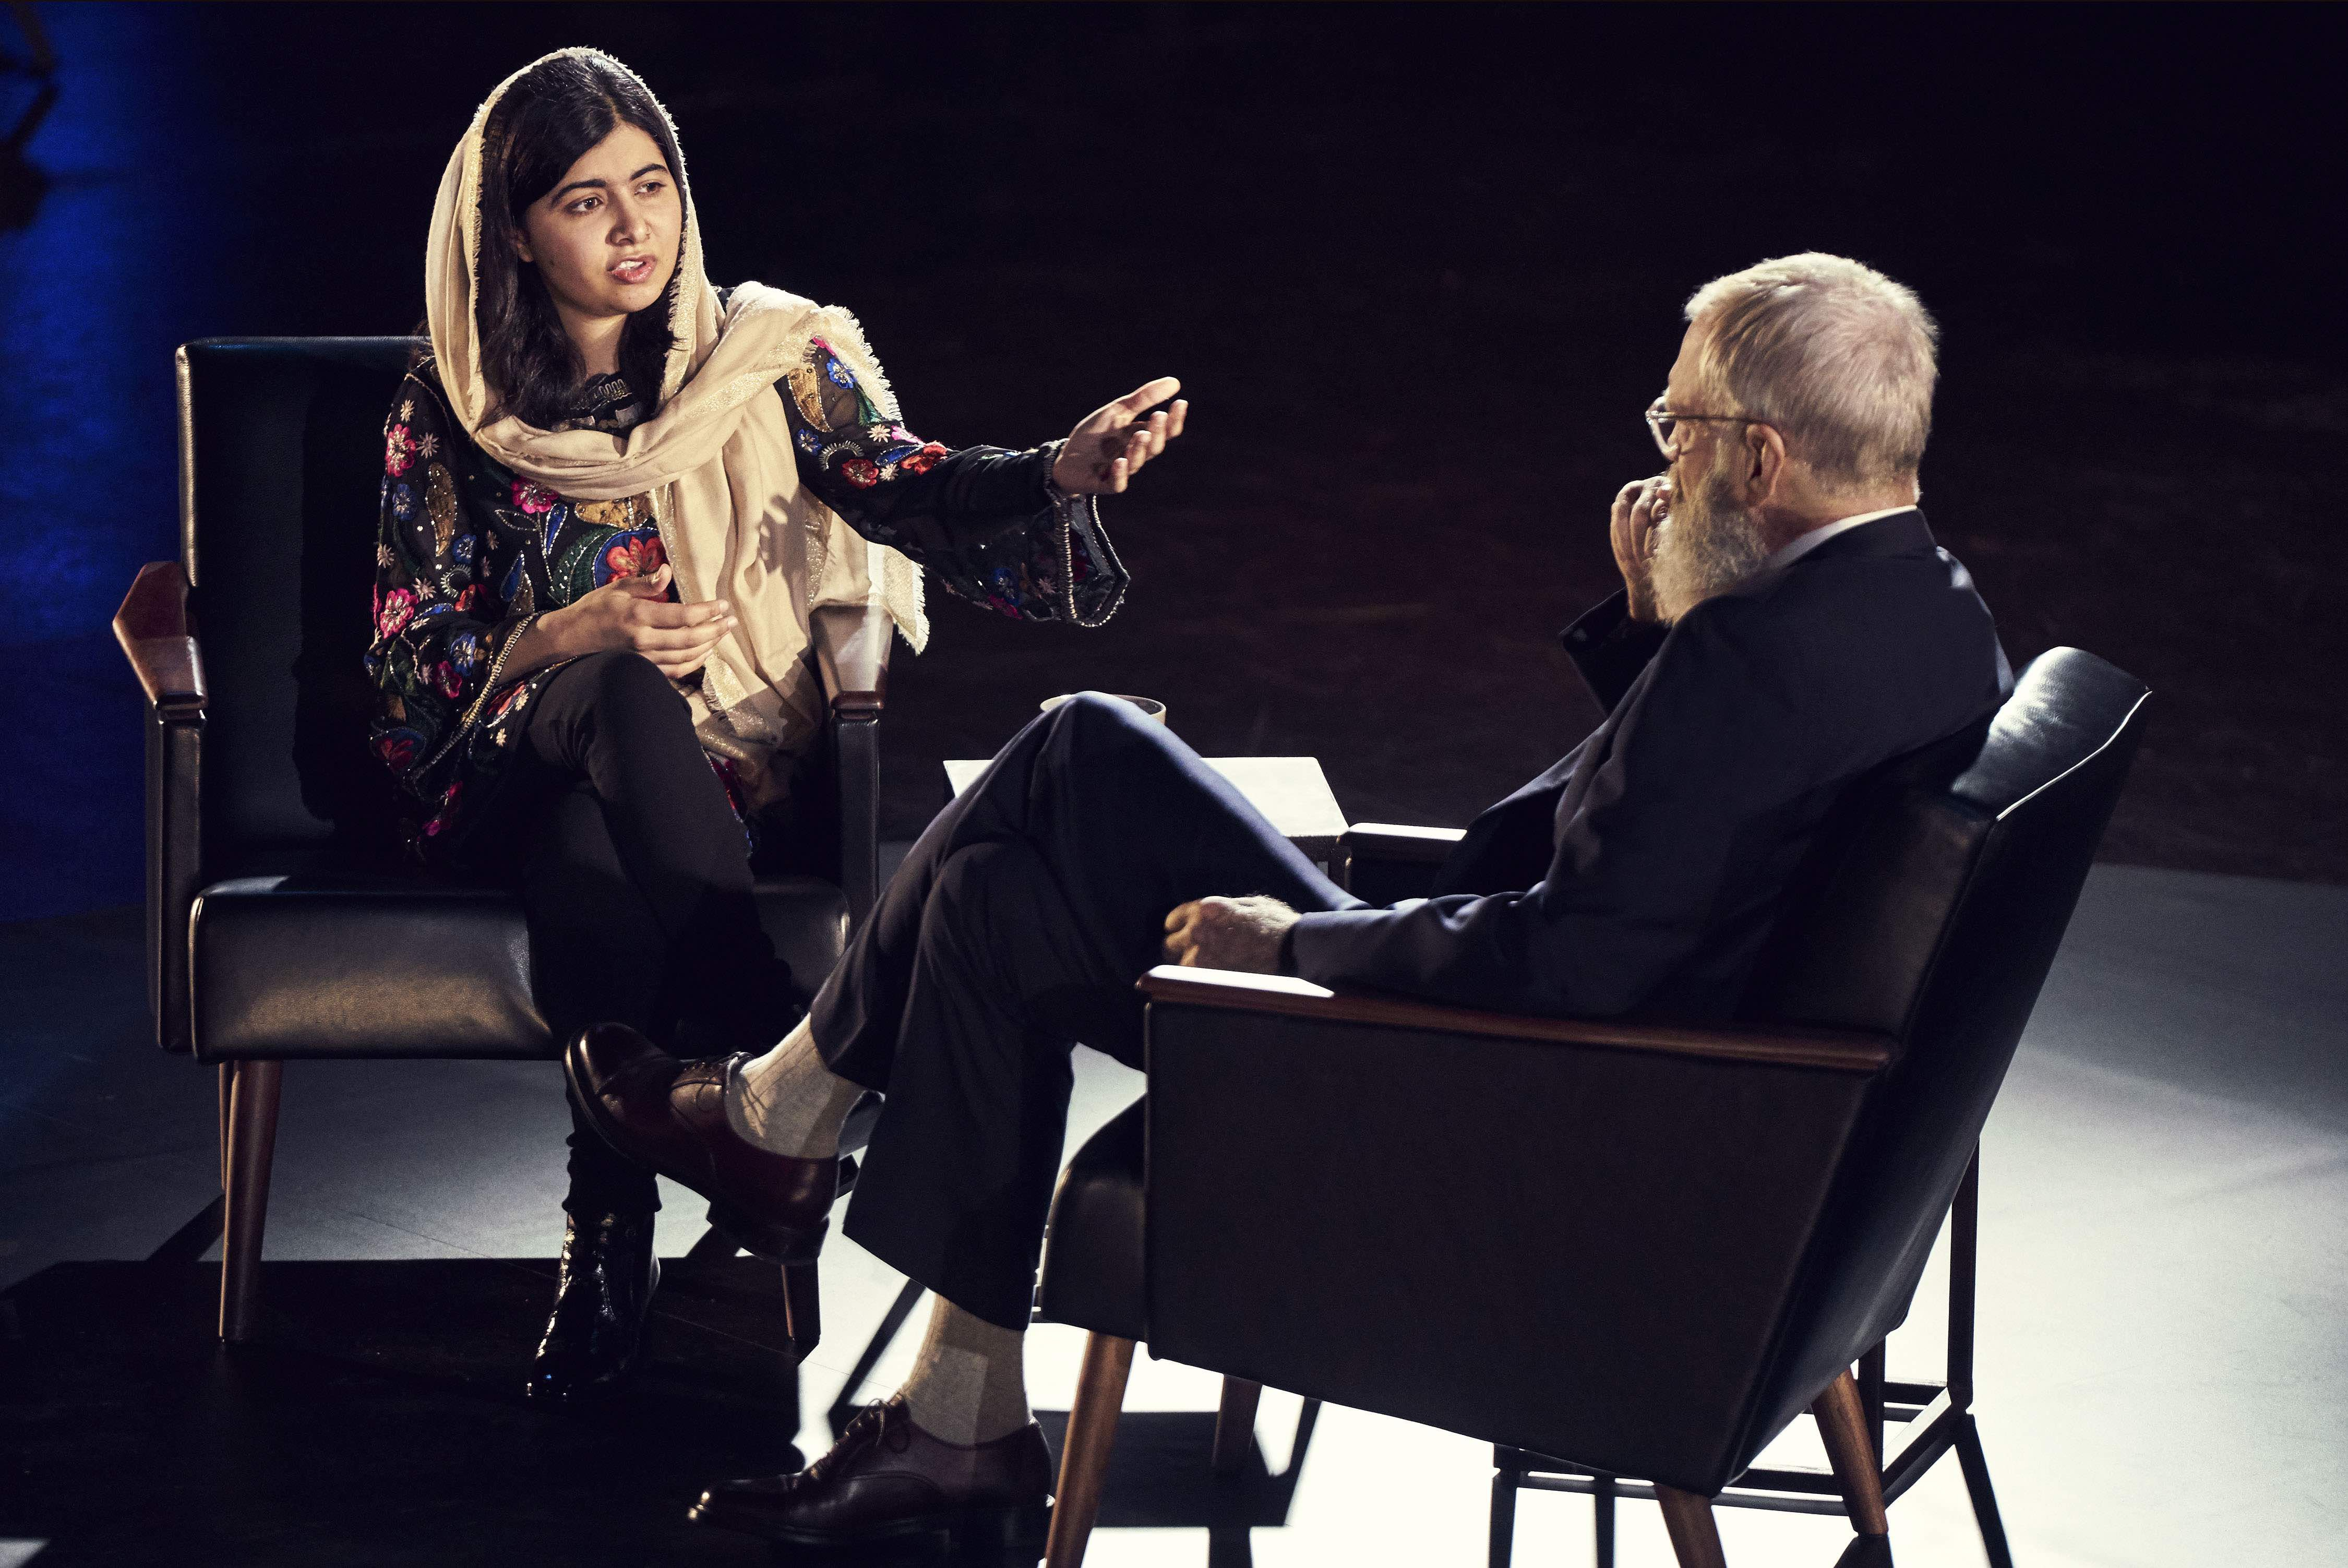 malala-letterman-netflix-interview.jpg